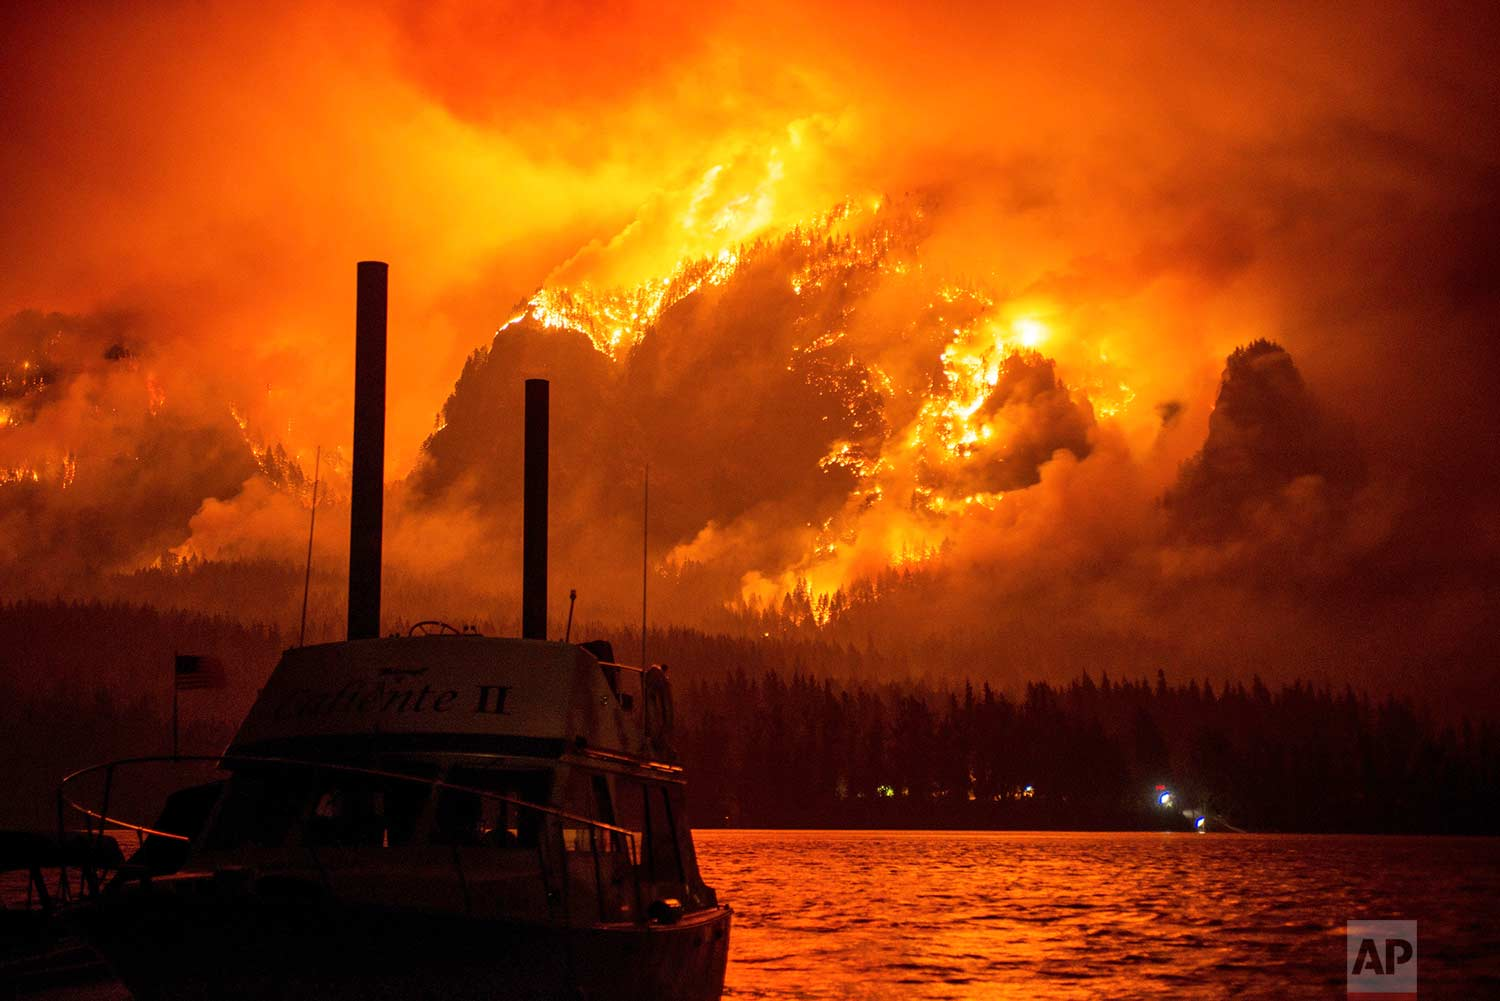 This photo provided by KATU-TV shows the Eagle Creek wildfire as seen from Stevenson Wash., across the Columbia River, burning in the Columbia River Gorge above Cascade Locks, Ore., on Monday Sept. 4, 2017. (Tristan Fortsch/KATU-TV via AP)